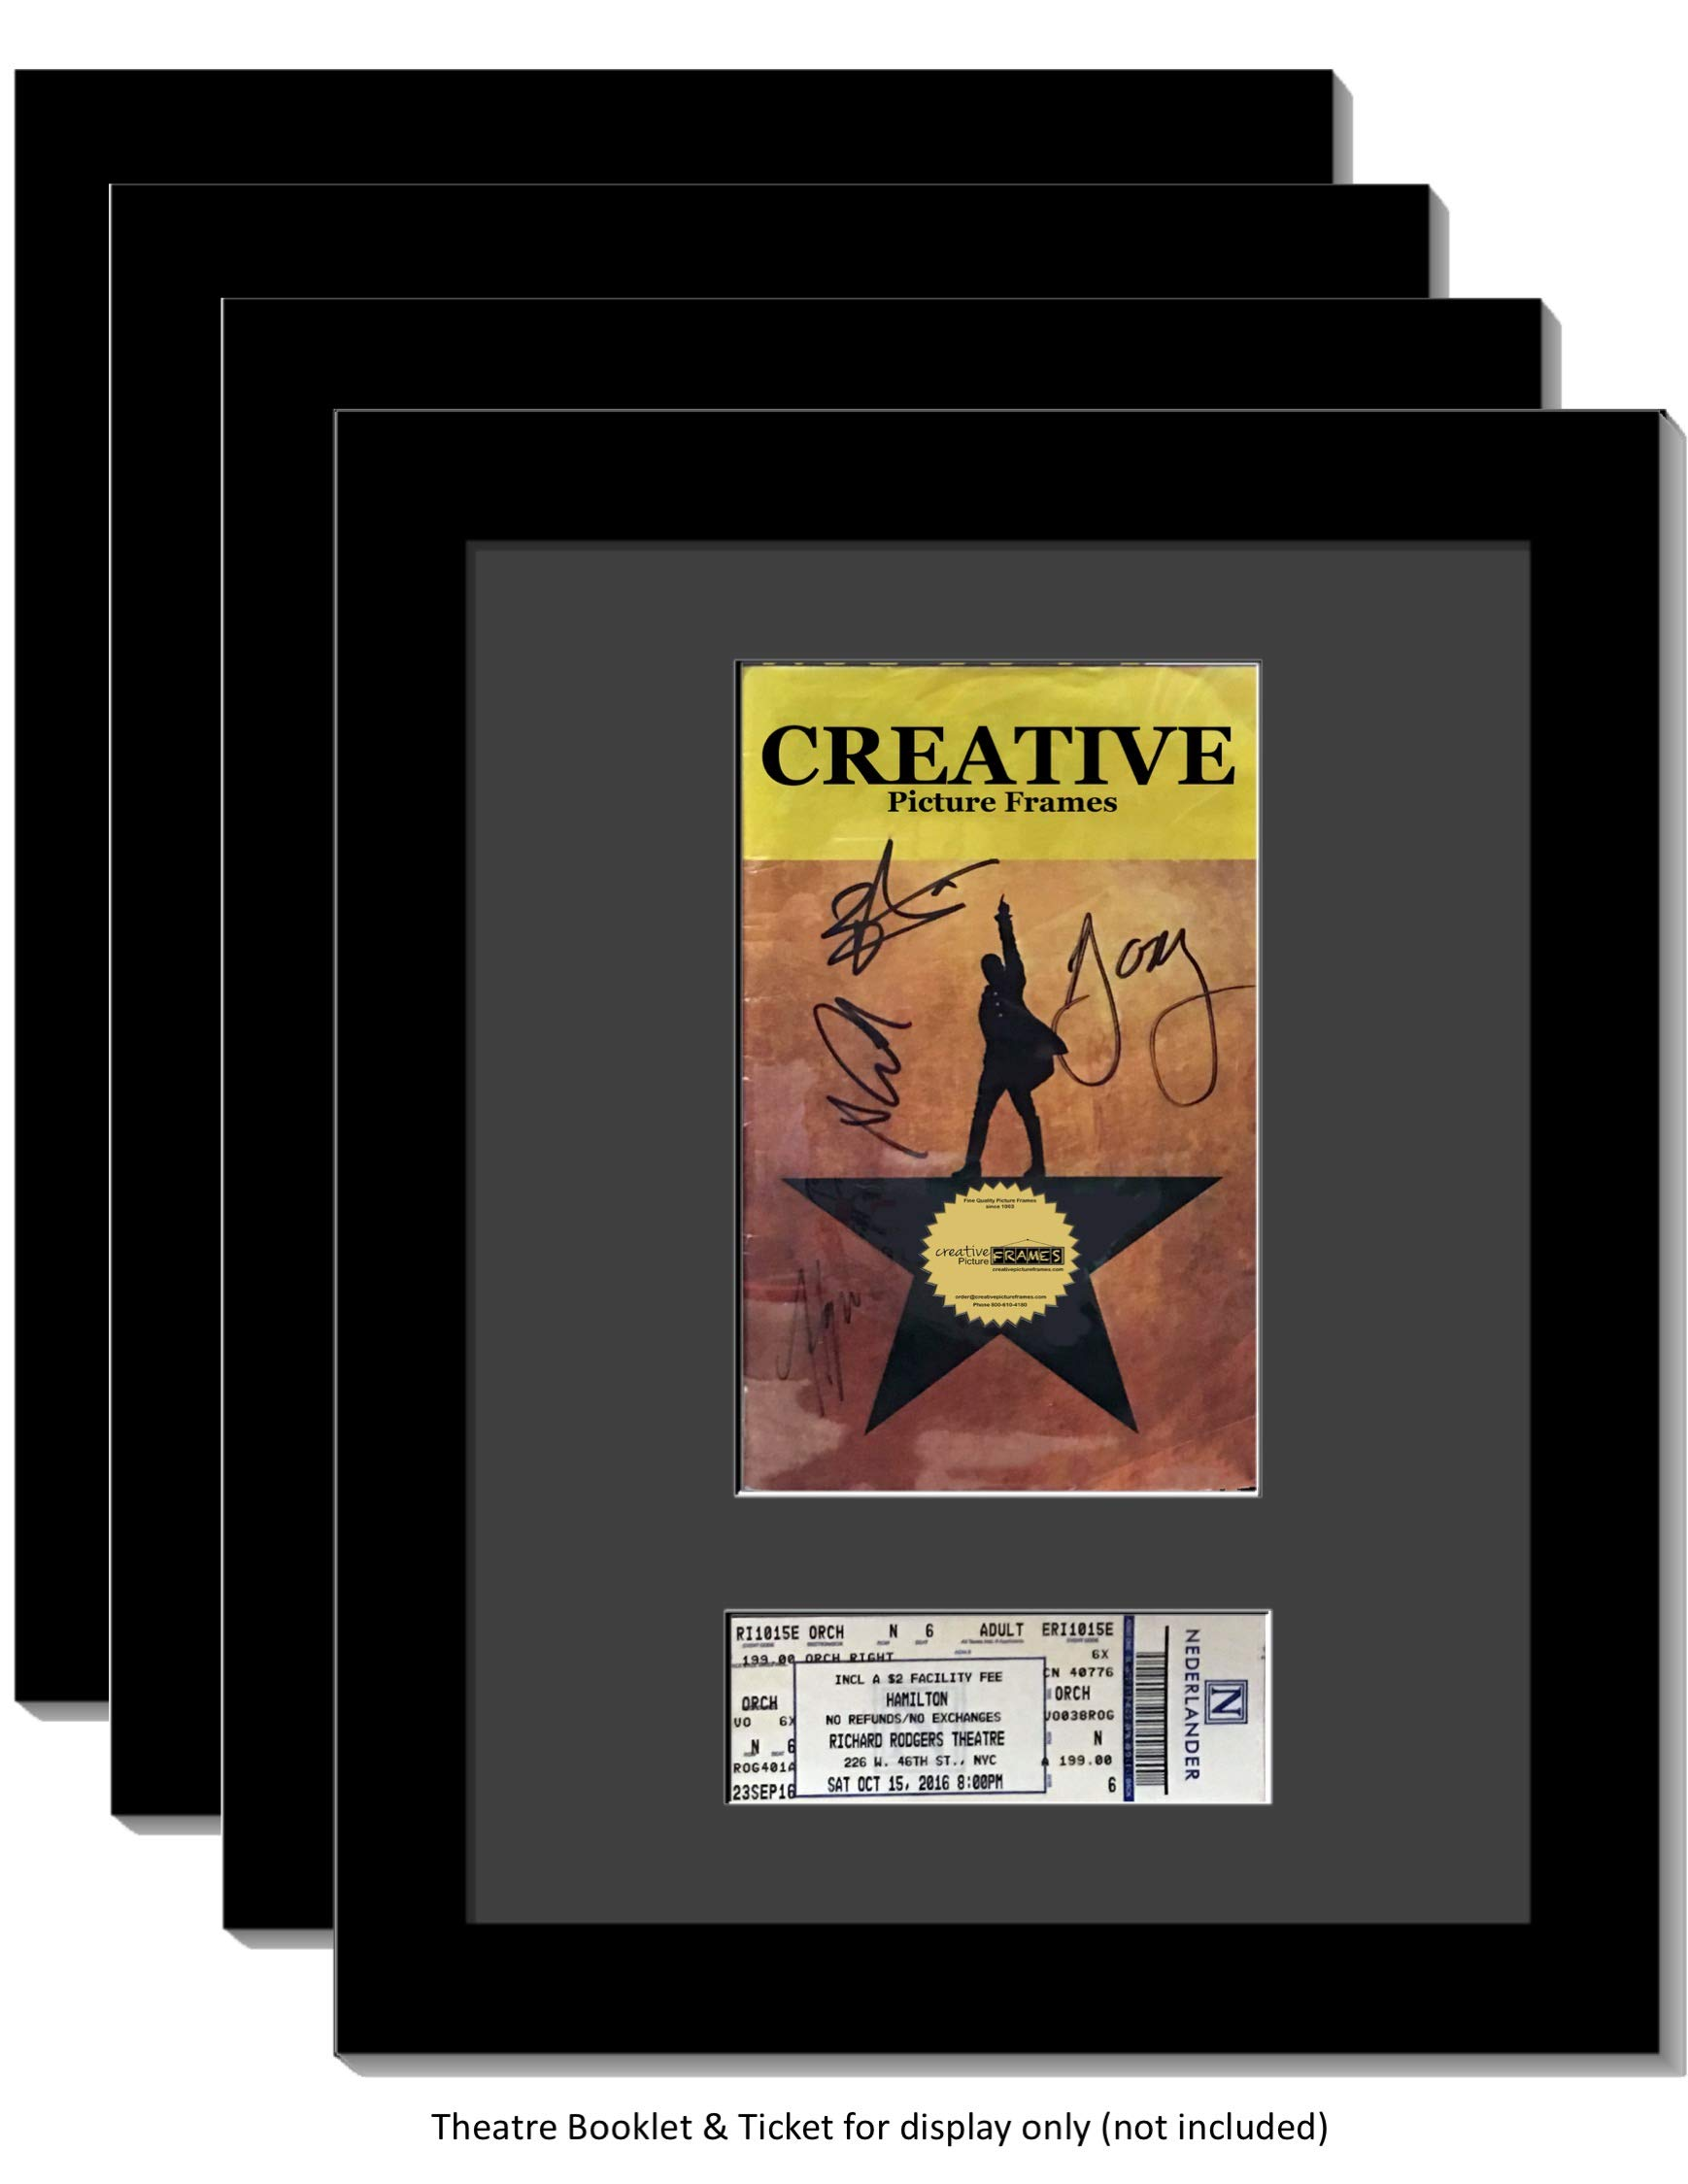 CreativePF [4pk11x14-b] Black Theatre Frame with Black Matting, Holds 5.5x8.5-inch Media Plus Ticket Including Installed Wall Hanger (Theatre Bill Not Included, Pack of 4)